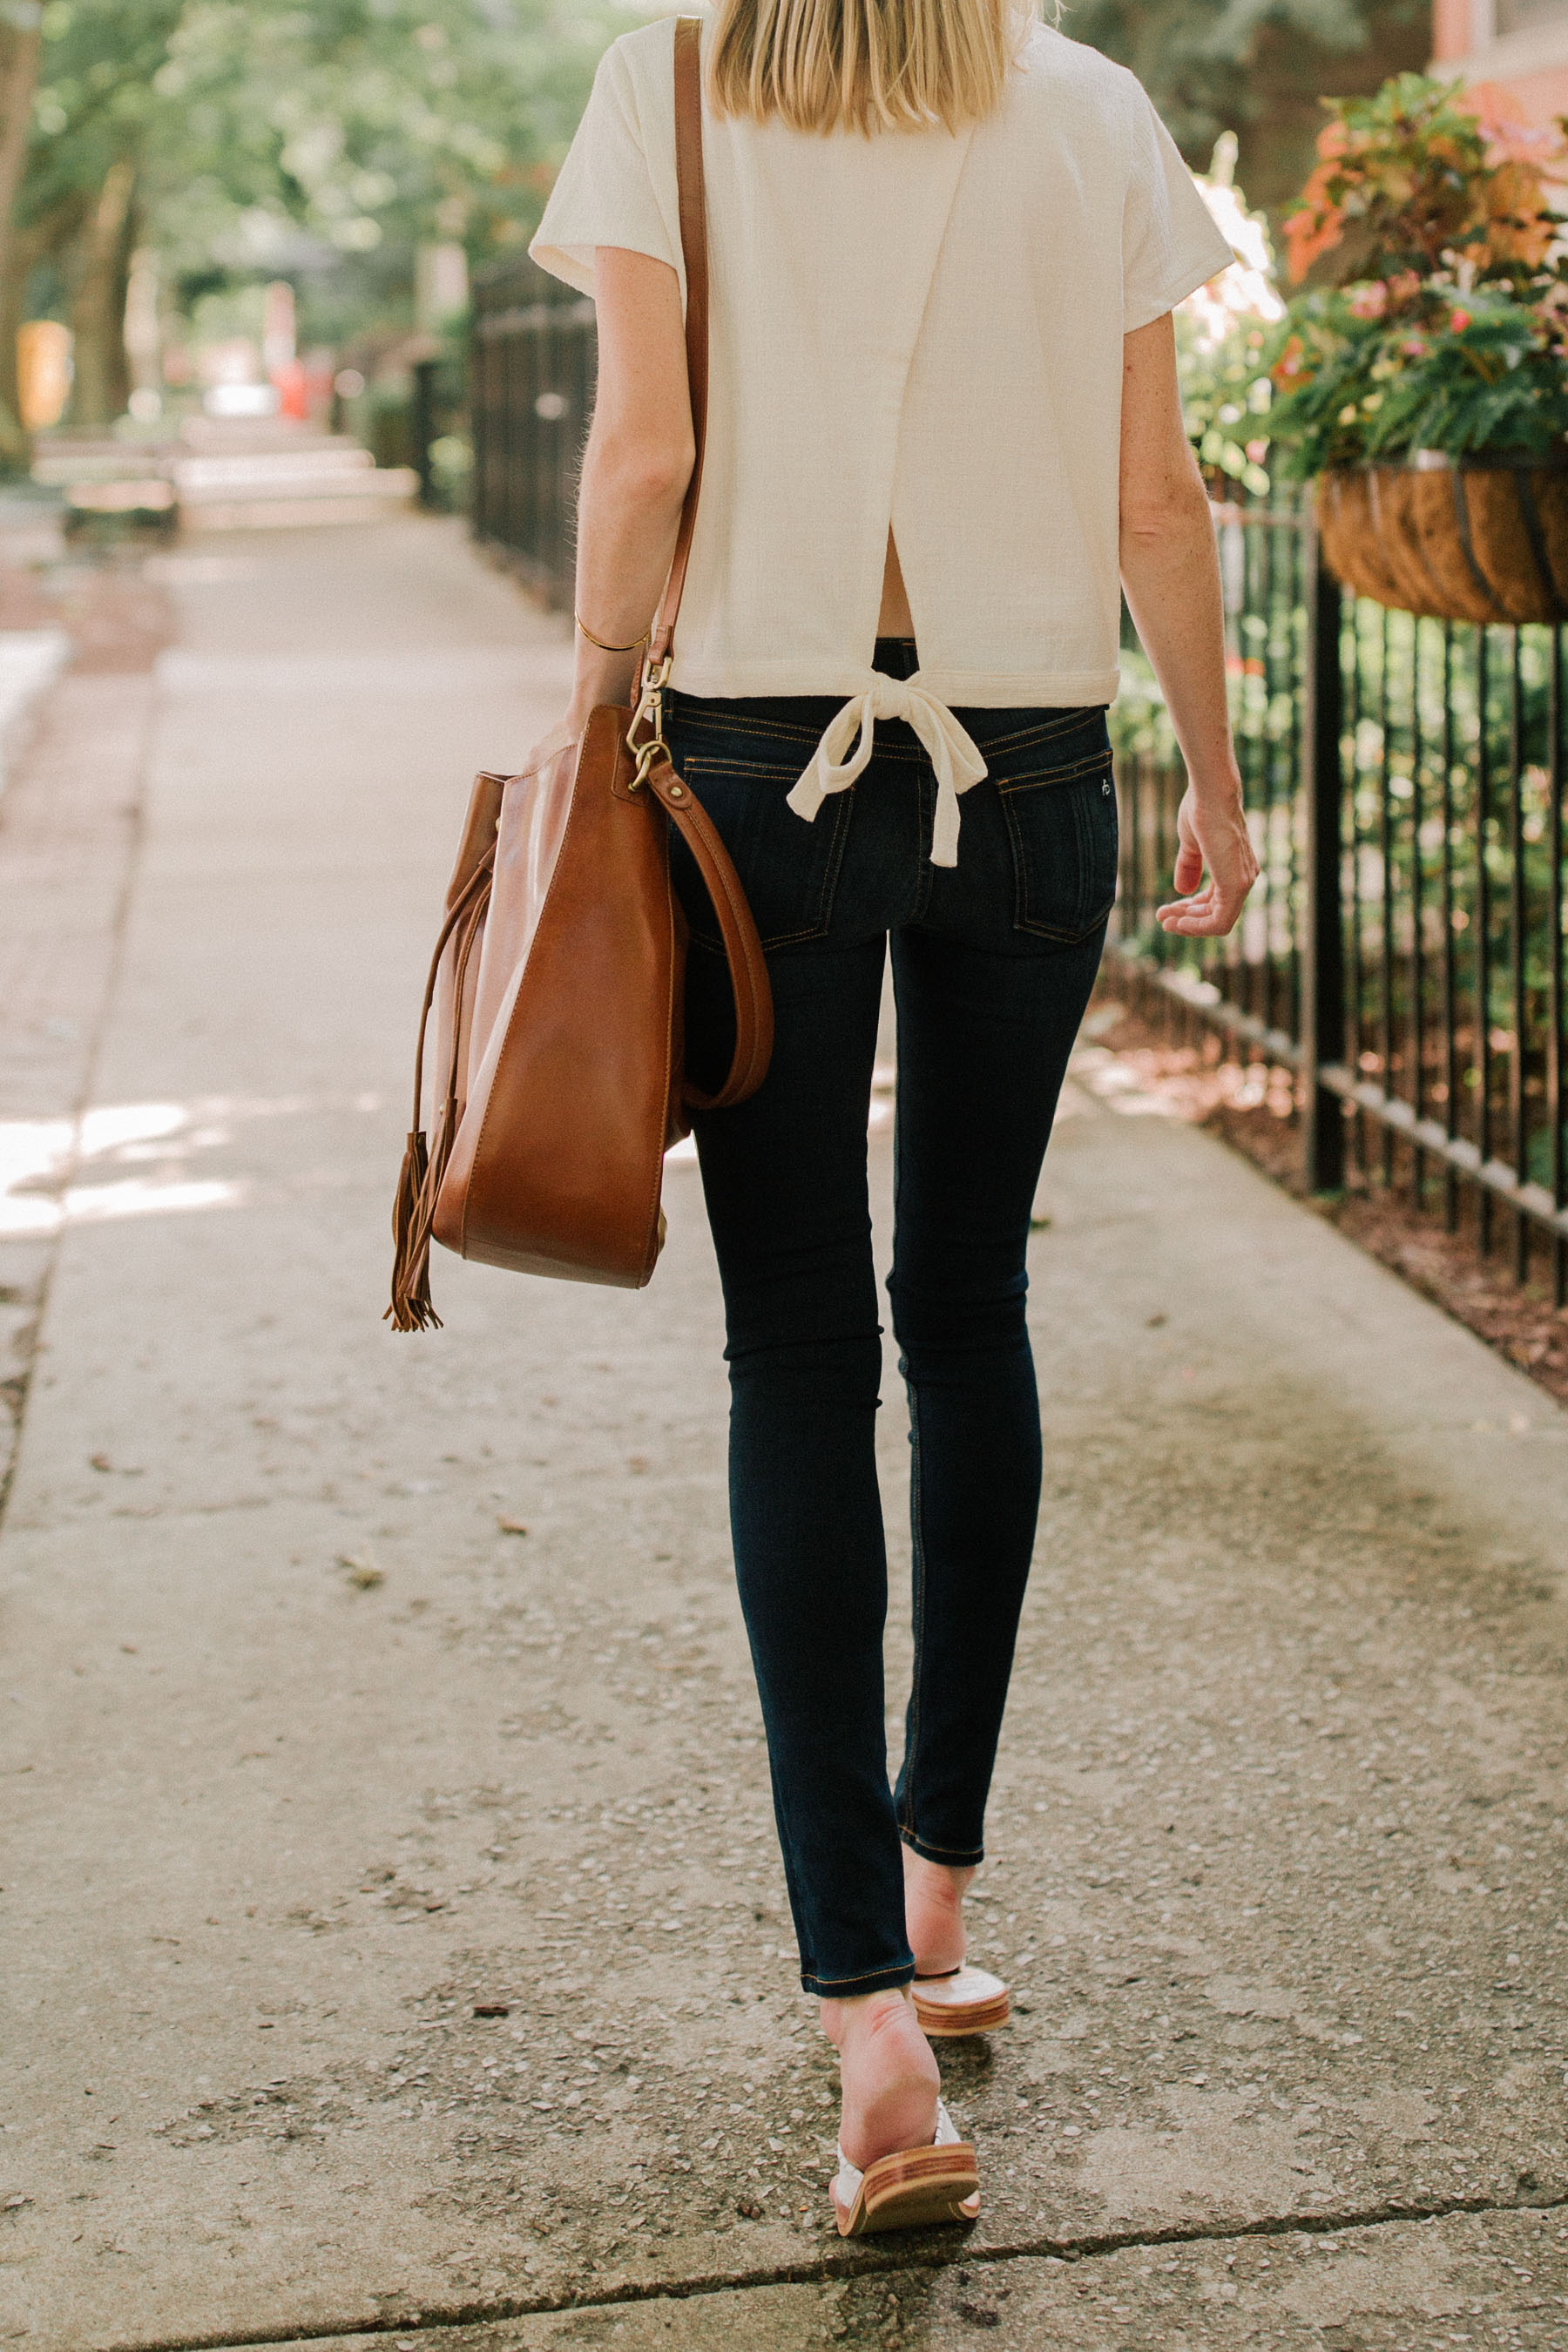 Madewell Tie-Back Top / Rag & Bone Skinny Jeans  | Kelly in the City